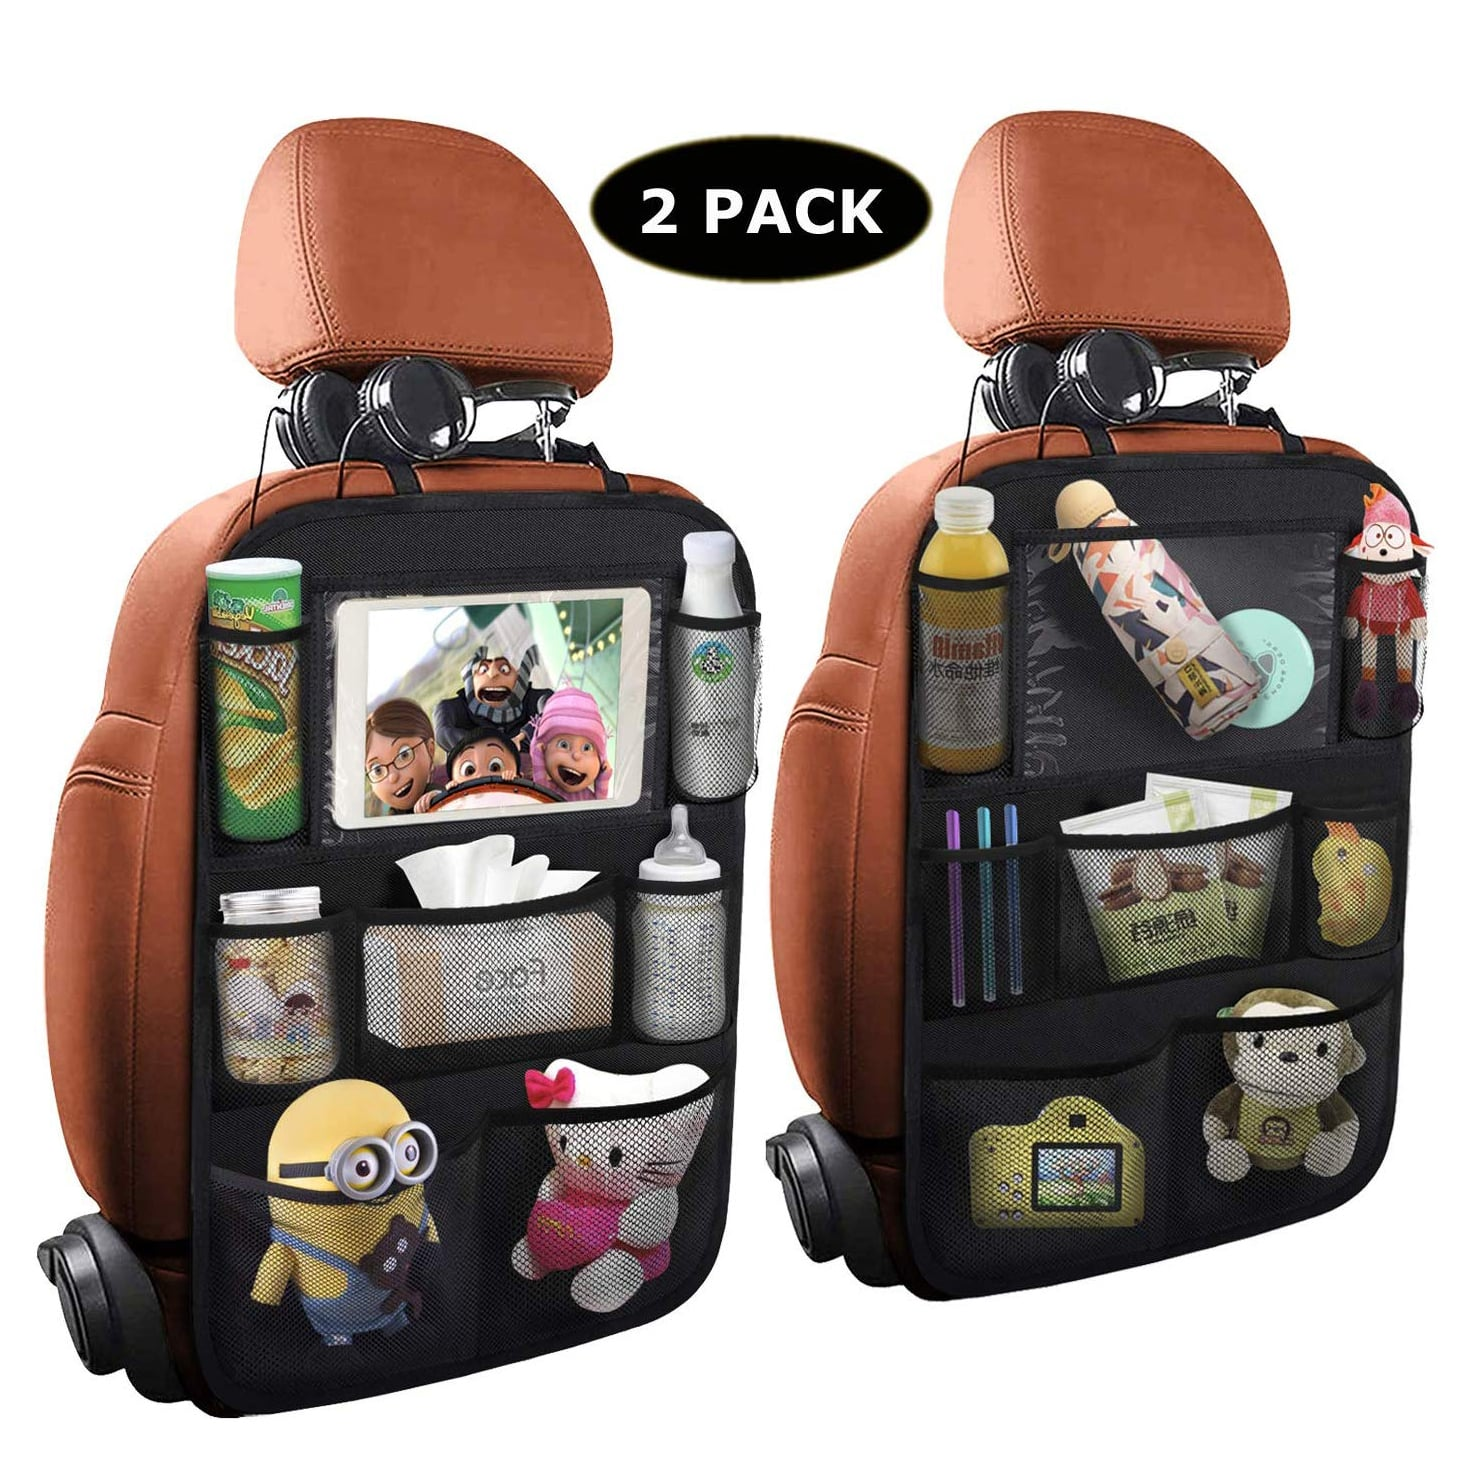 ONE PIX Car Backseat Organizer w/ a Touch Screen Tablet Holder (2 Pack)